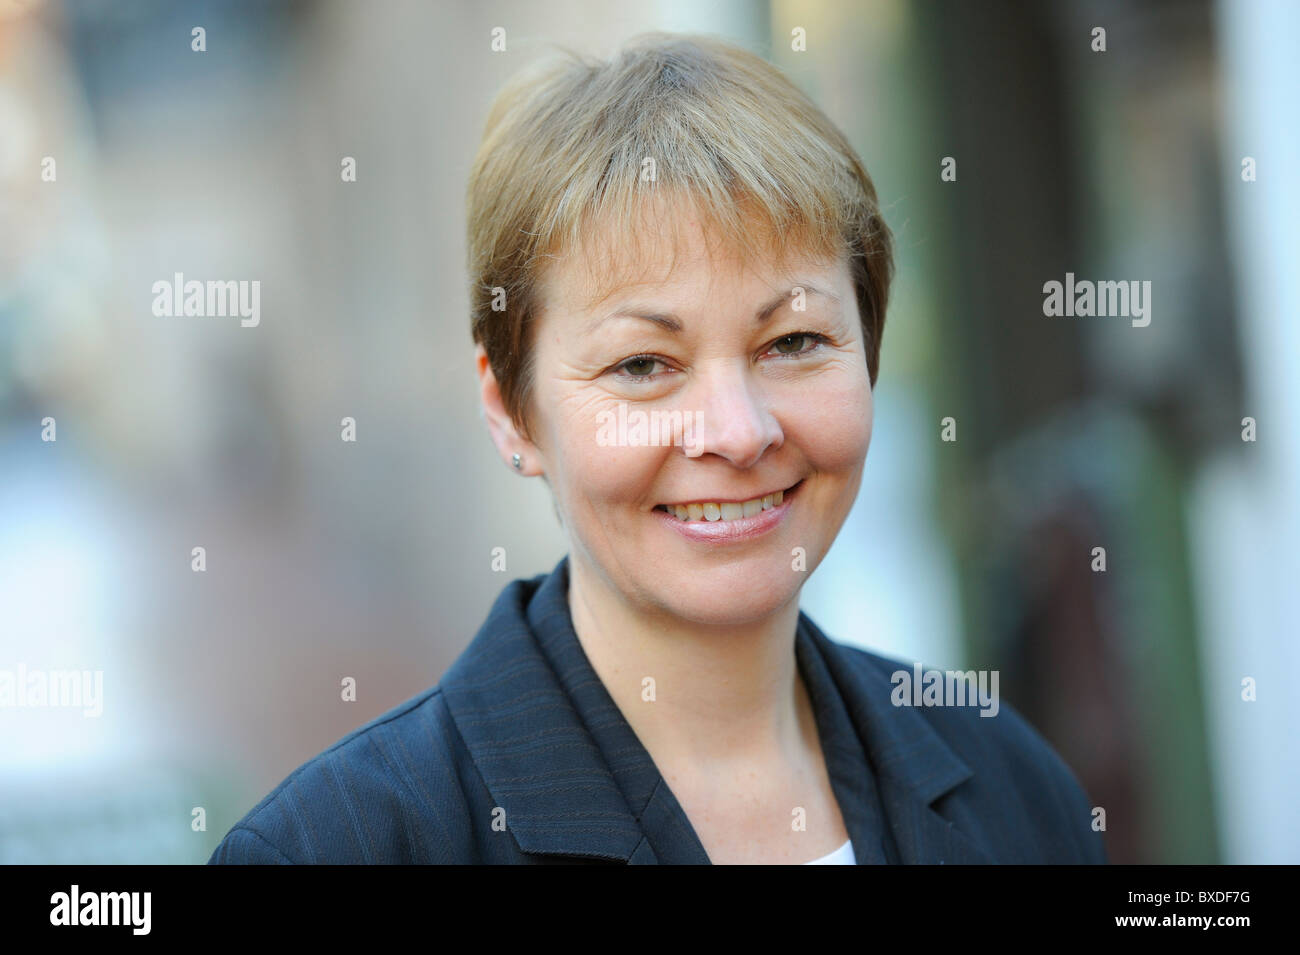 Caroline Lucas MP photographed  in Brighton, East Sussex UK. Picture by Jim Holden. - Stock Image